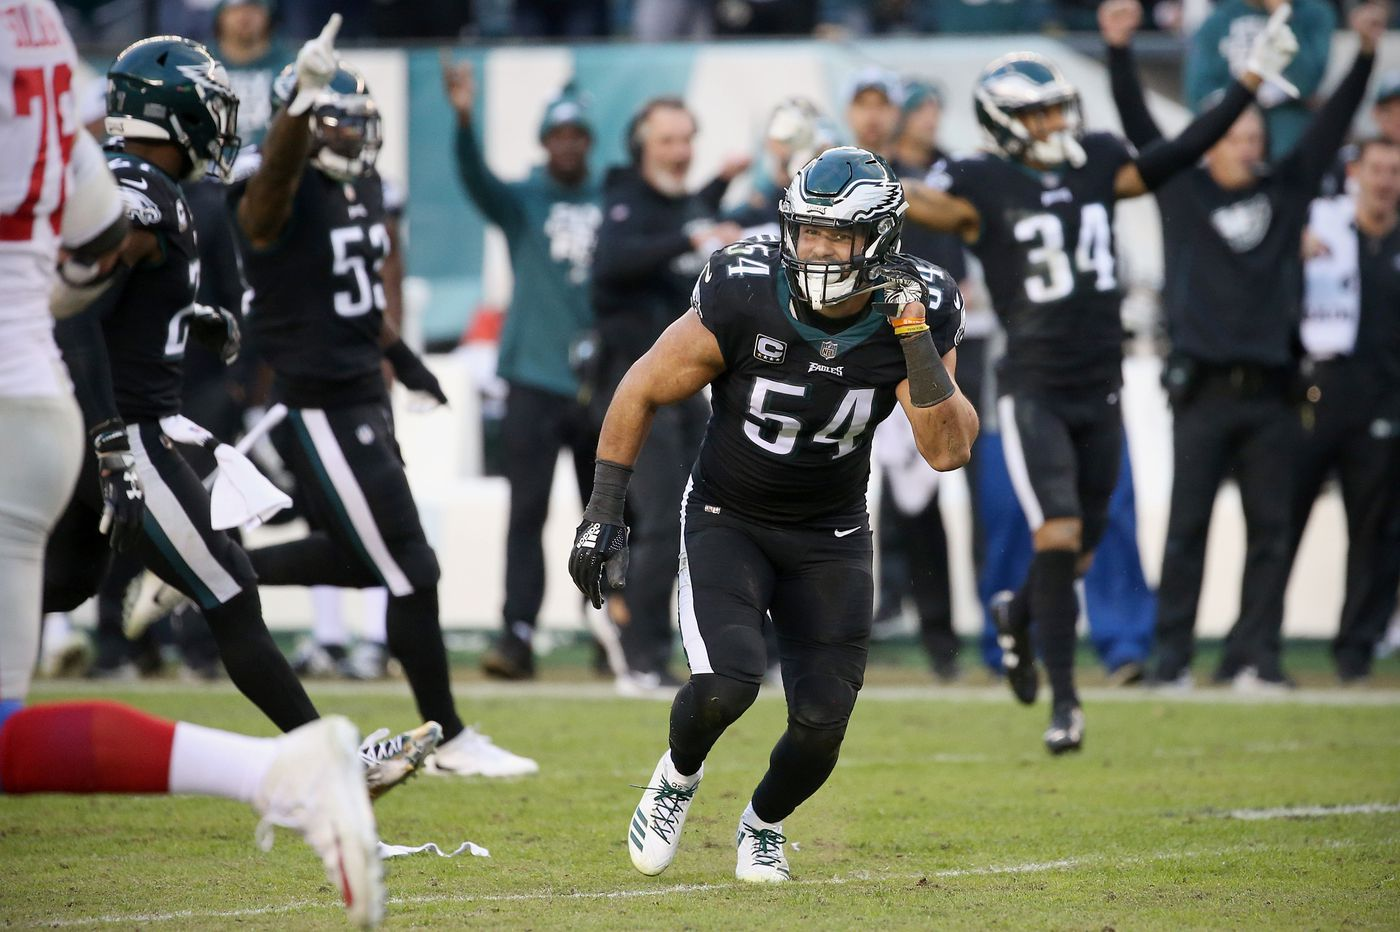 Thumbs up: Eagles linebackers Nigel Bradham, Kamu Grugier-Hill on playing with a cast